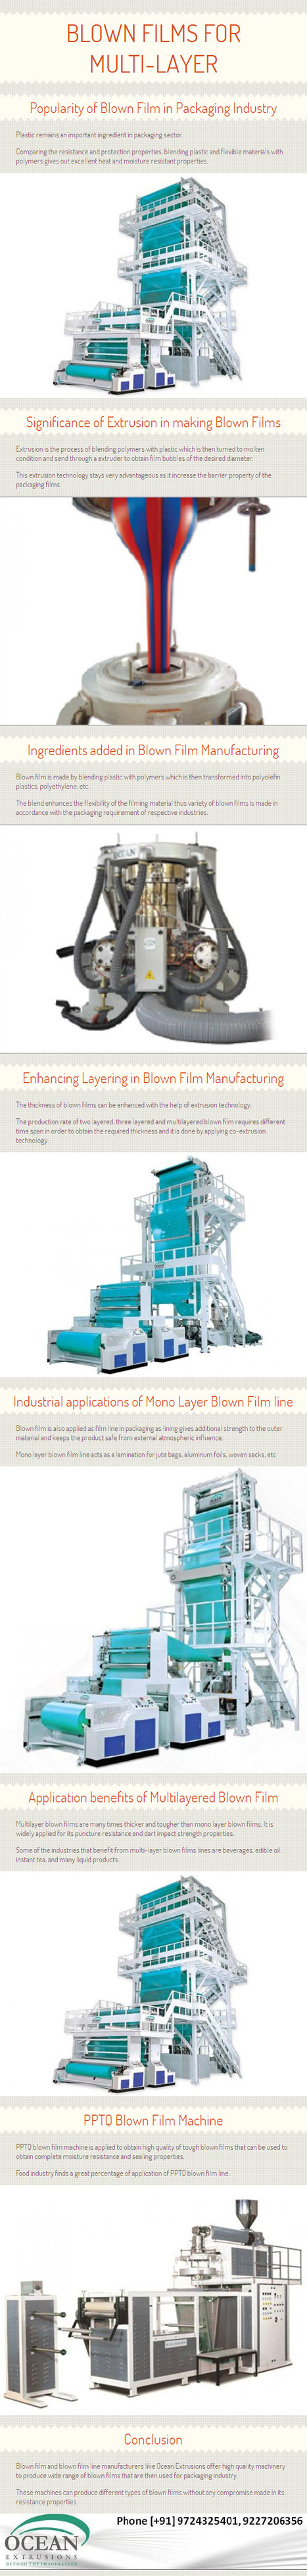 Blown Films for Multi-Layer Form by www.oceanextrusions.com | oceanextrusions | Scoop.it